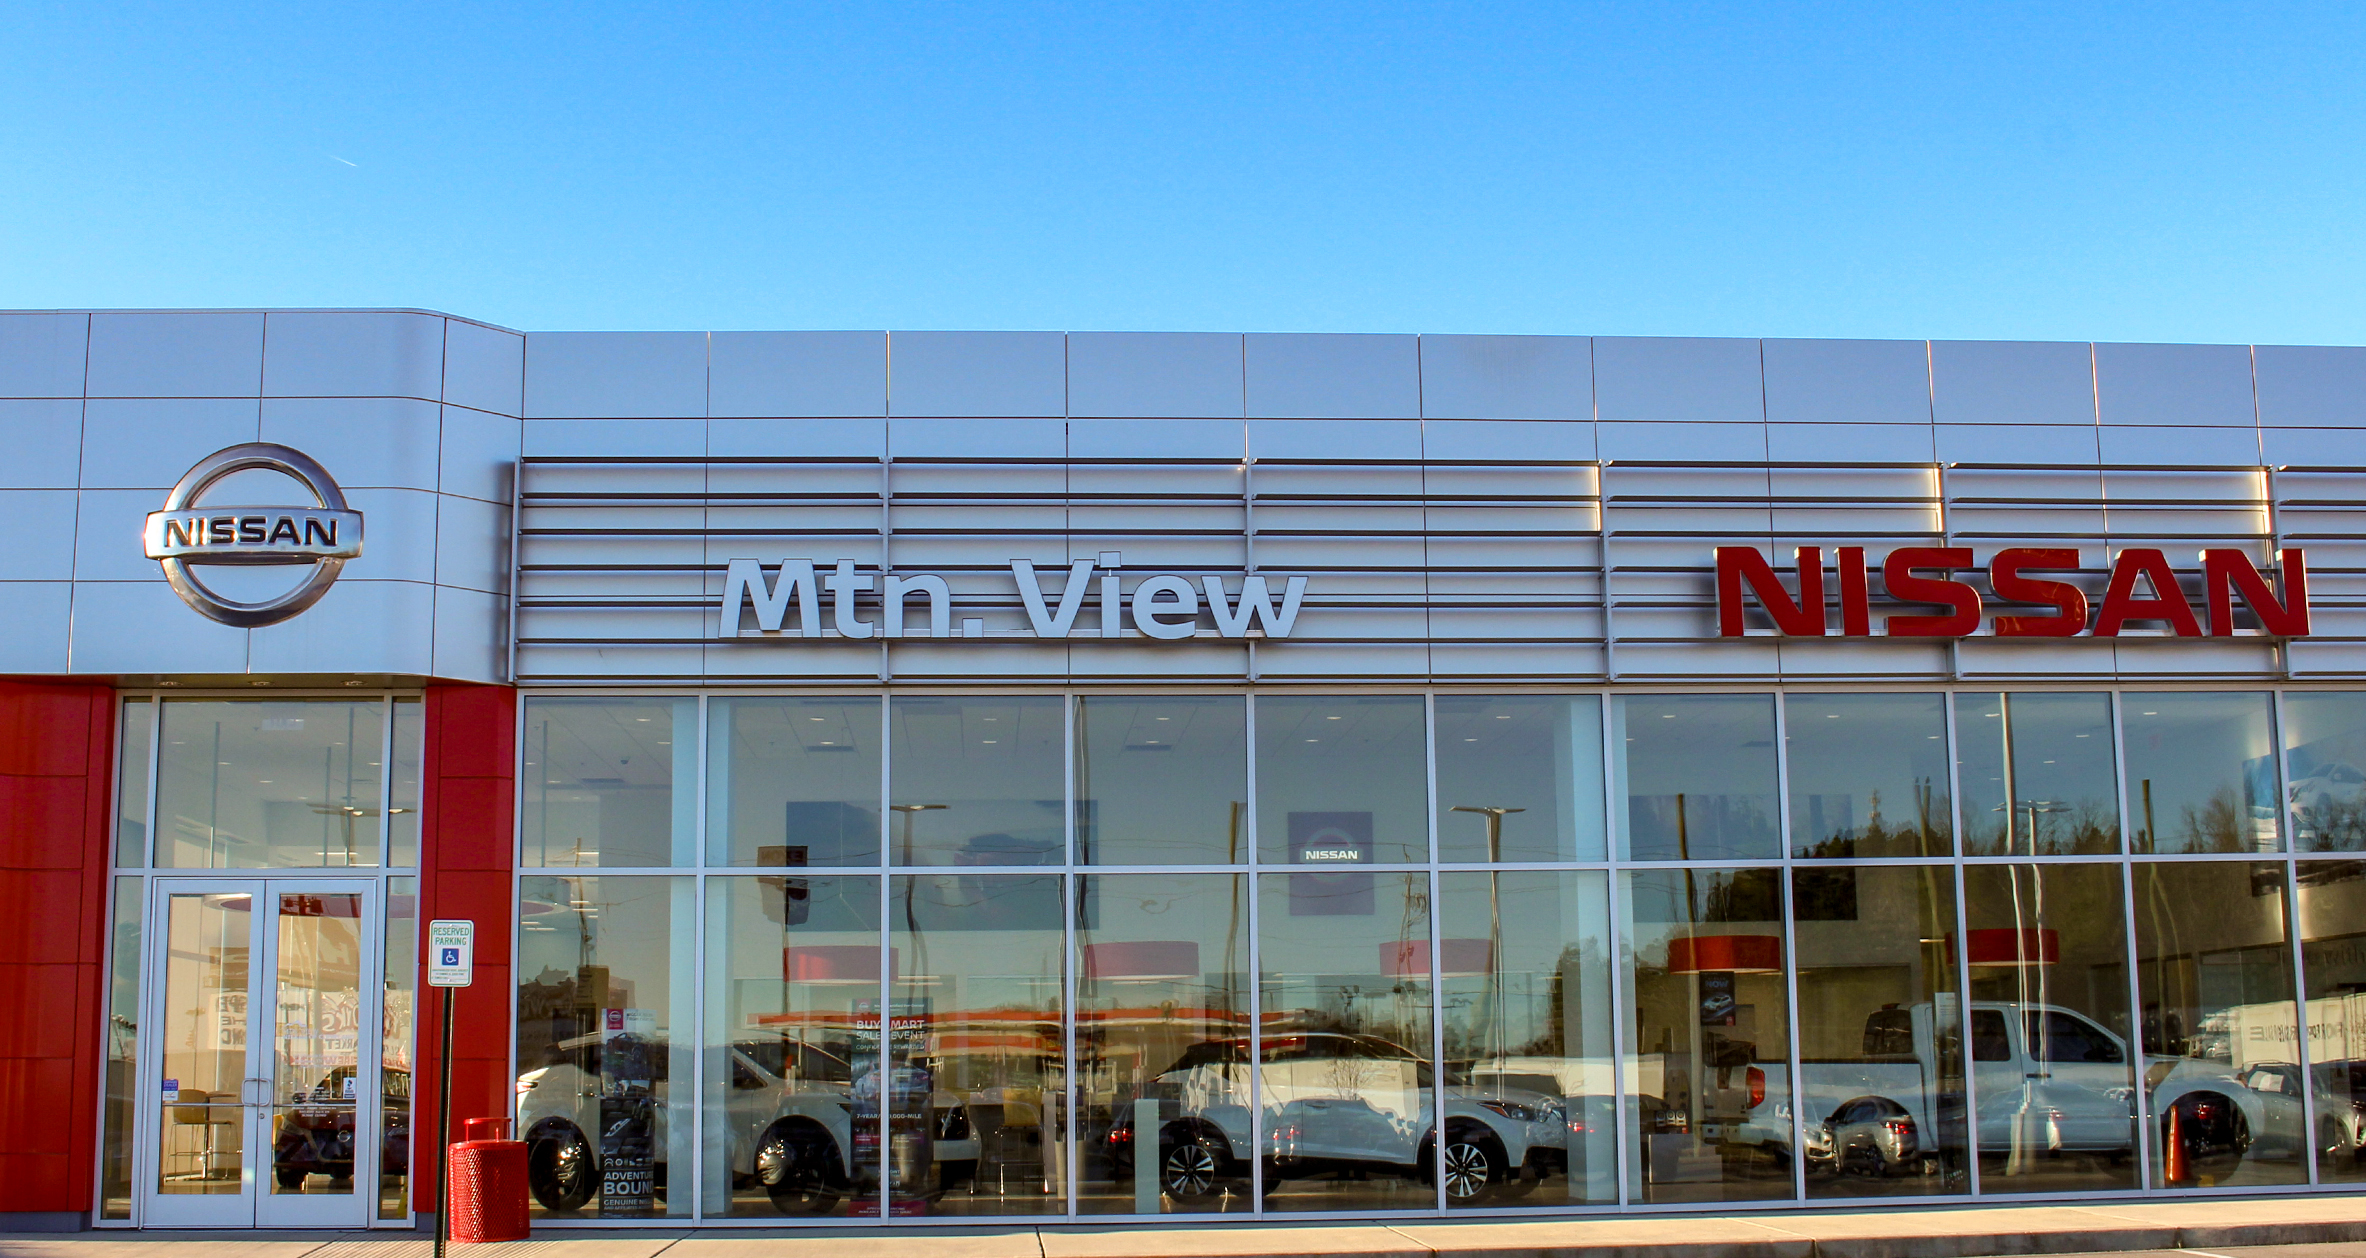 Mtn. View Nissan of Cleveland